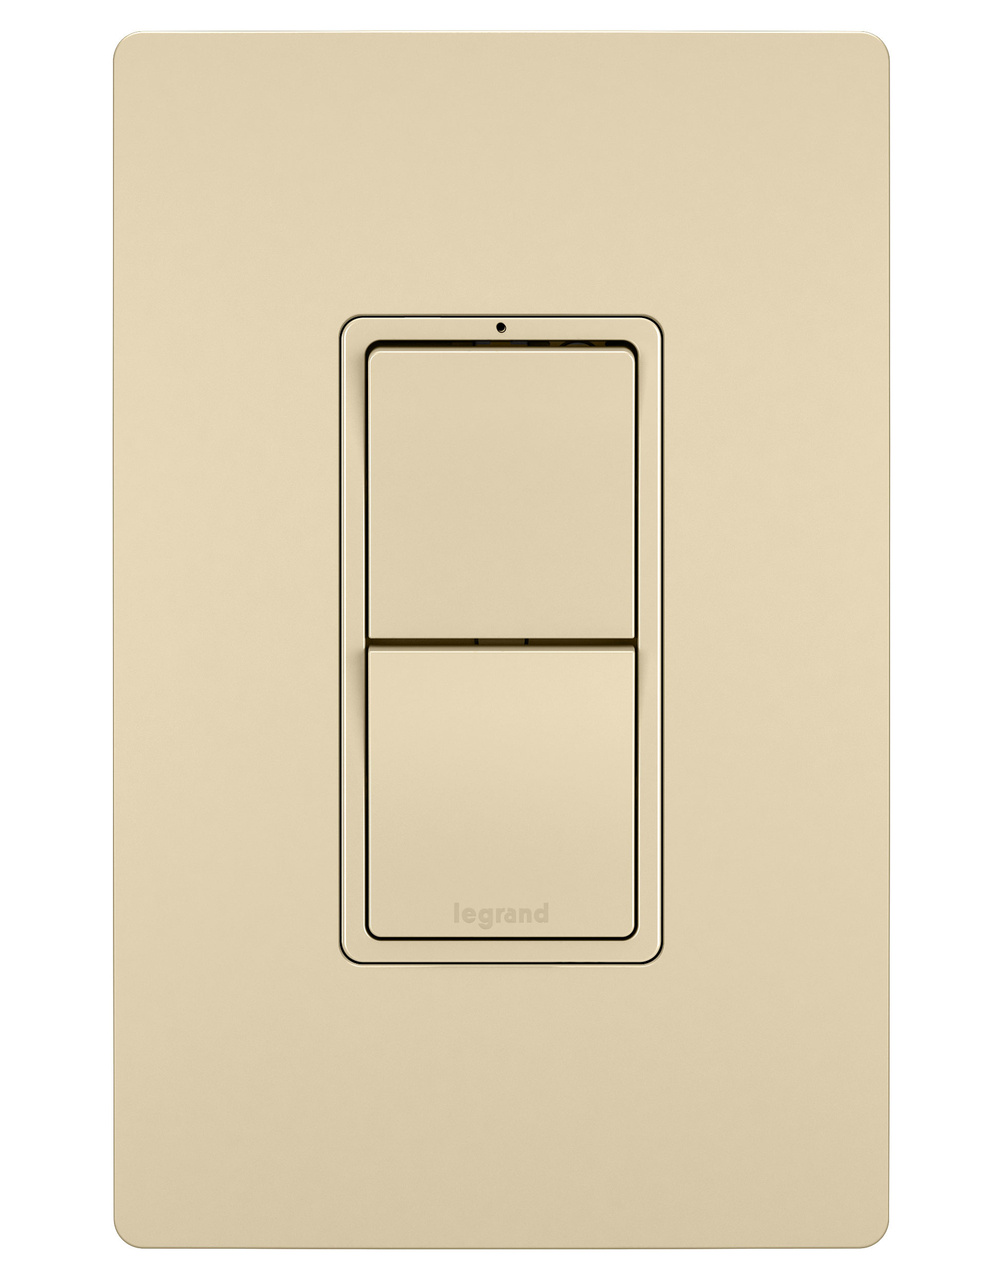 Switch Light Switches By Legrand